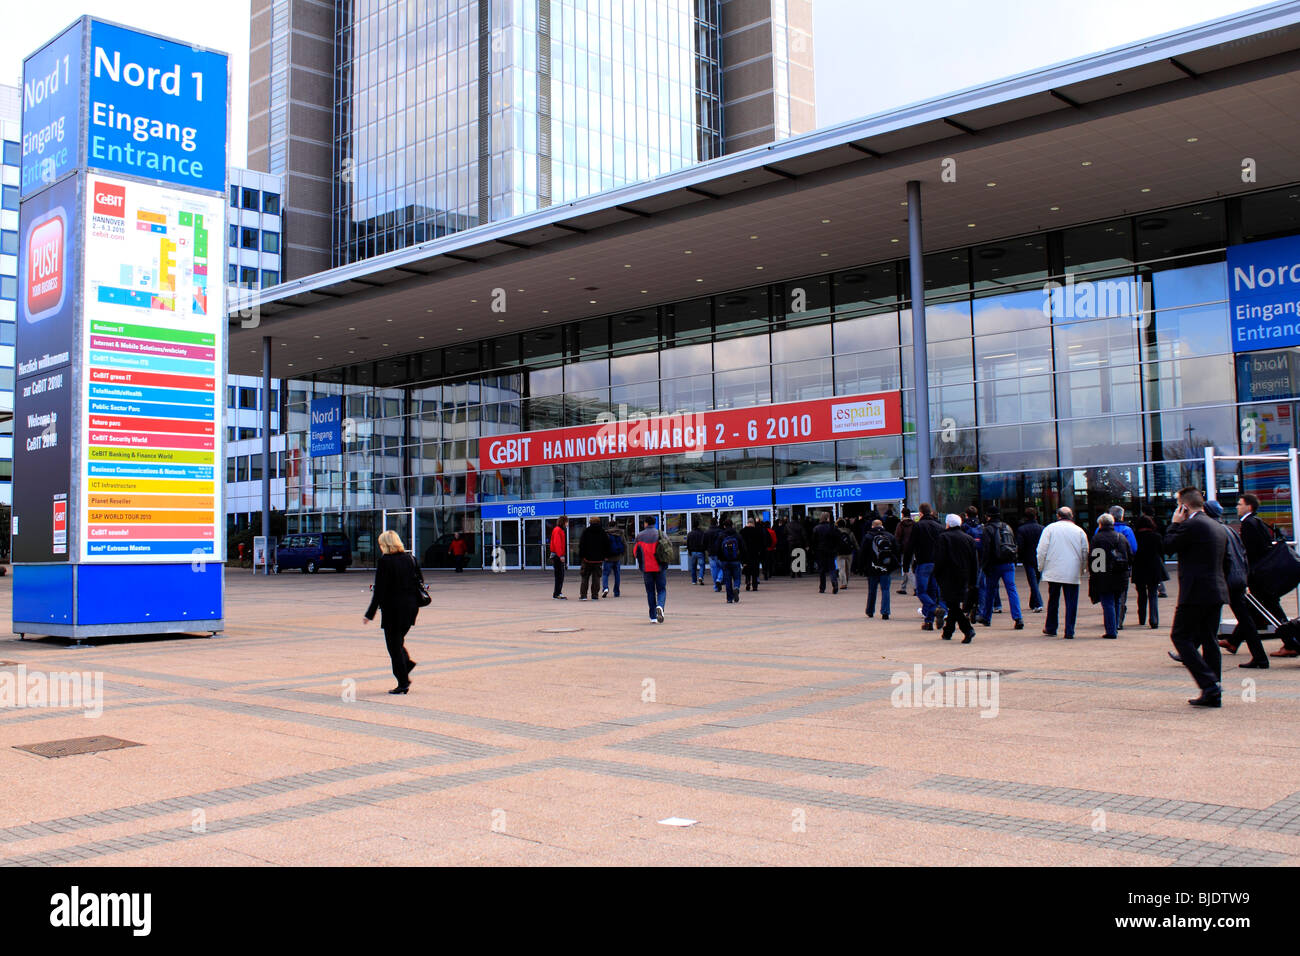 CeBIT 2010, world`s largest computer expo, entrance Nord 1. Federal Republic of Germany, Lower Saxony, Hanover, - Stock Image